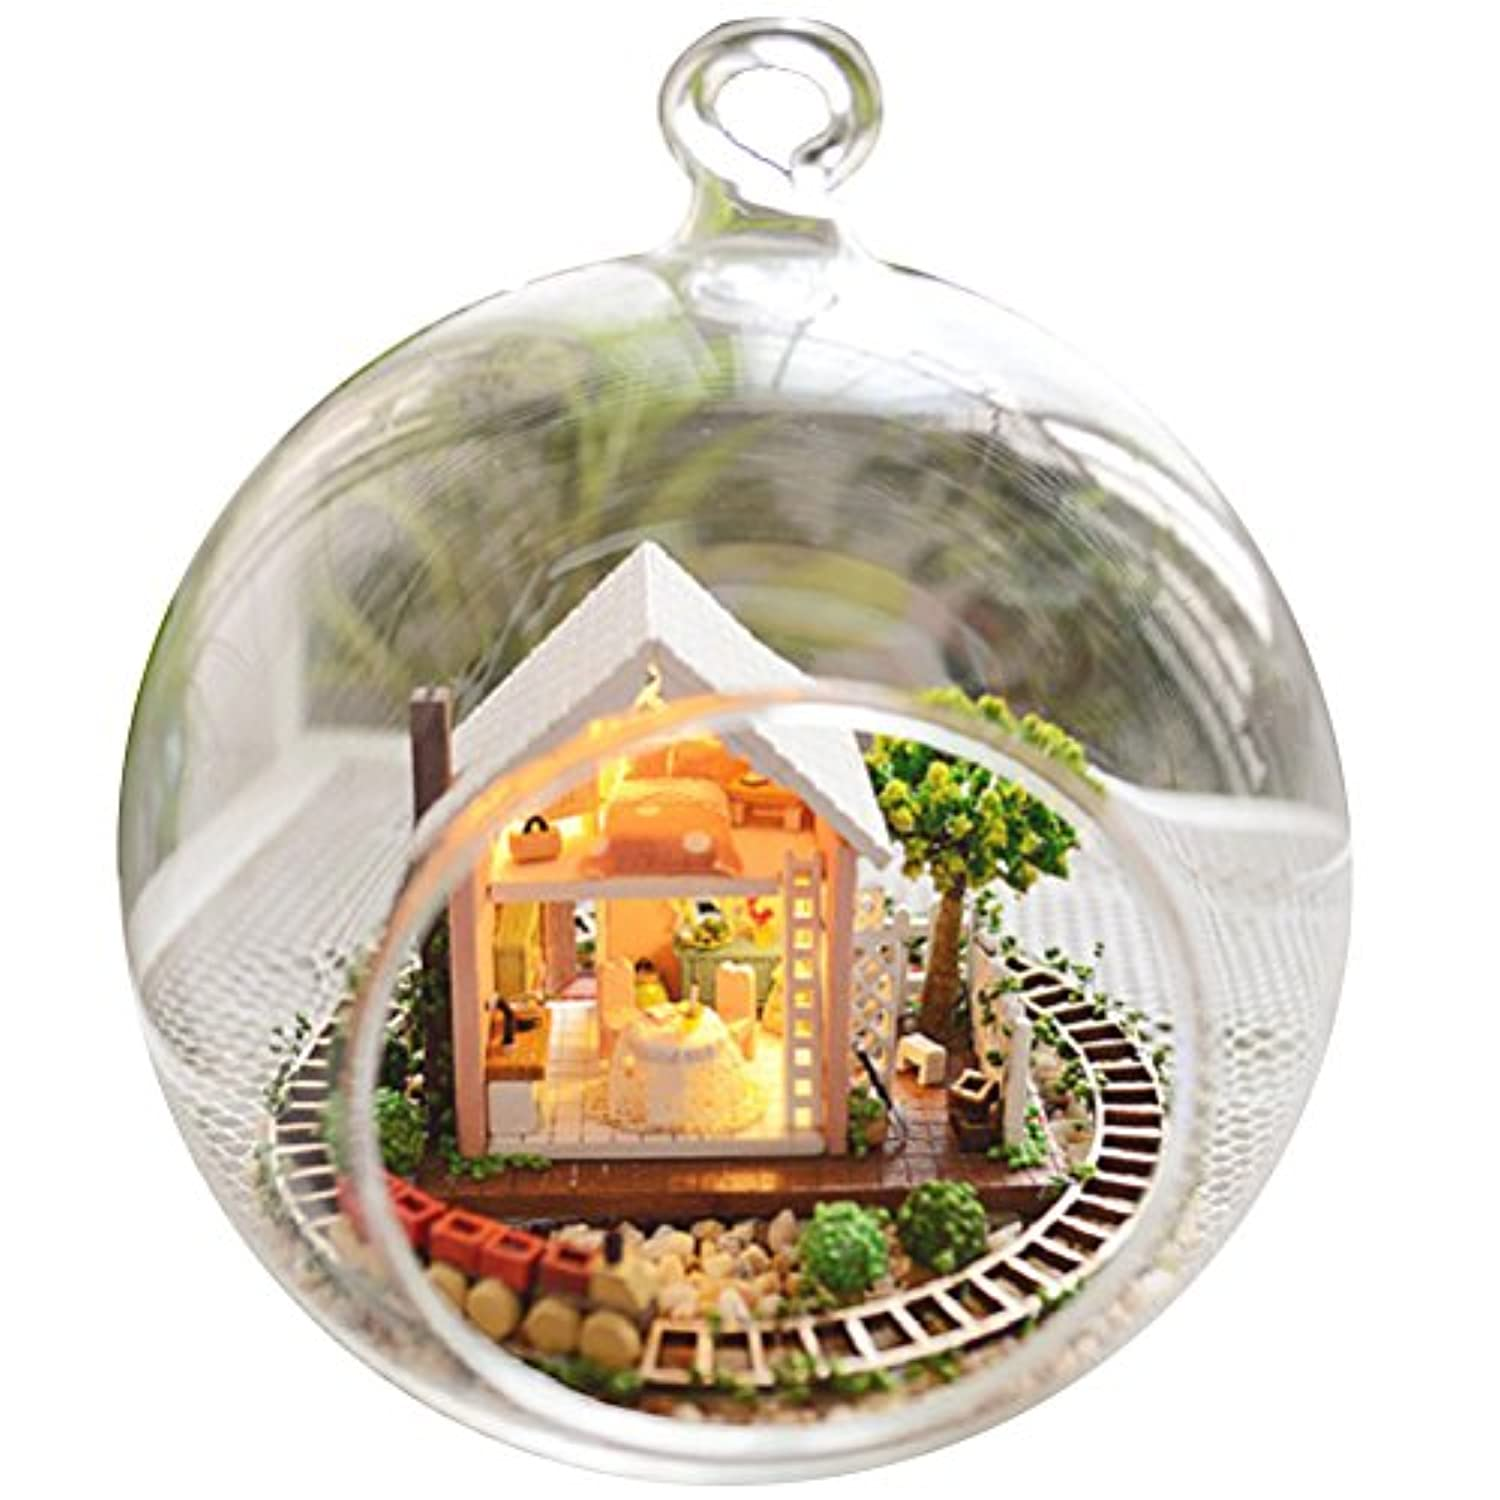 Zhhlinyuan DIY Handmade Assembling Cabin モデル Wooden Dollhouse with Garden Hanging Glass House Model Toy